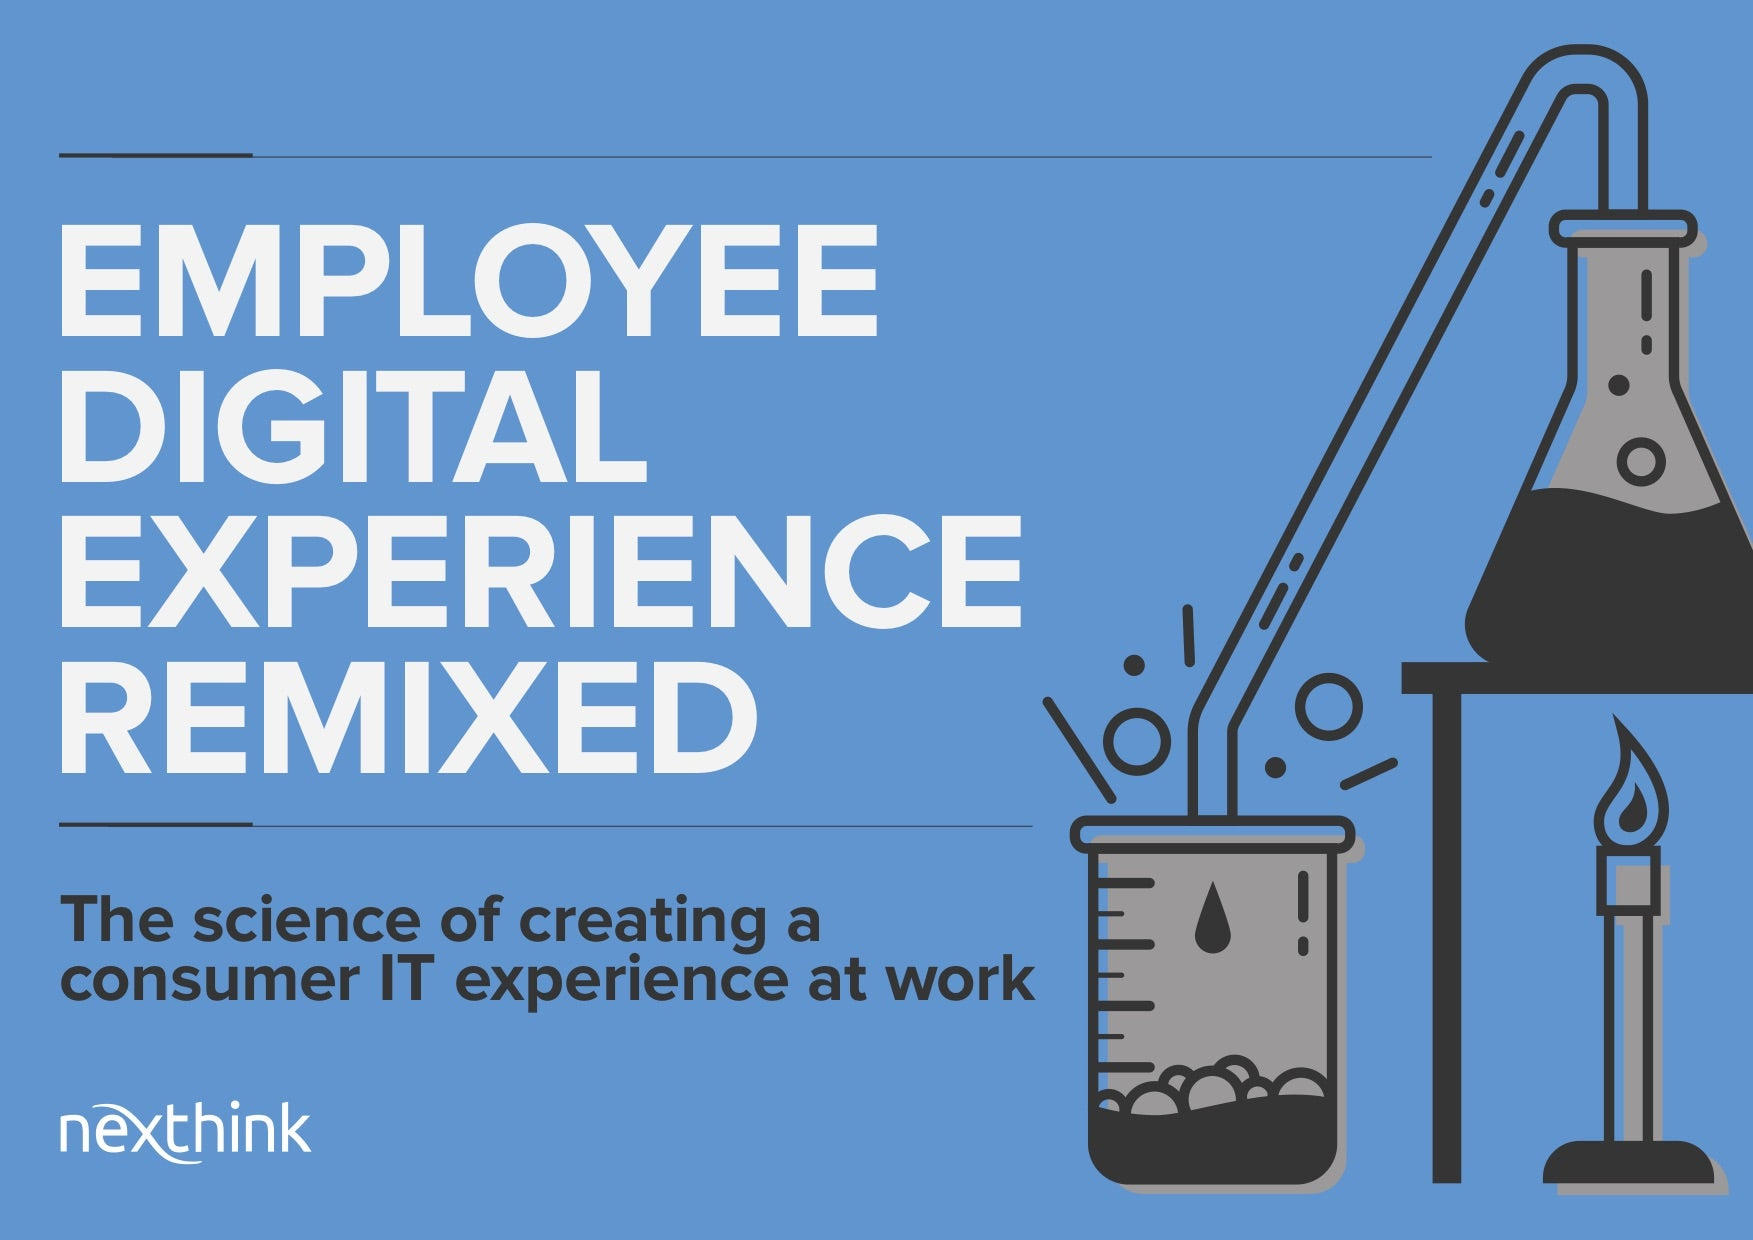 nexthink getting the employee digital experience equation right